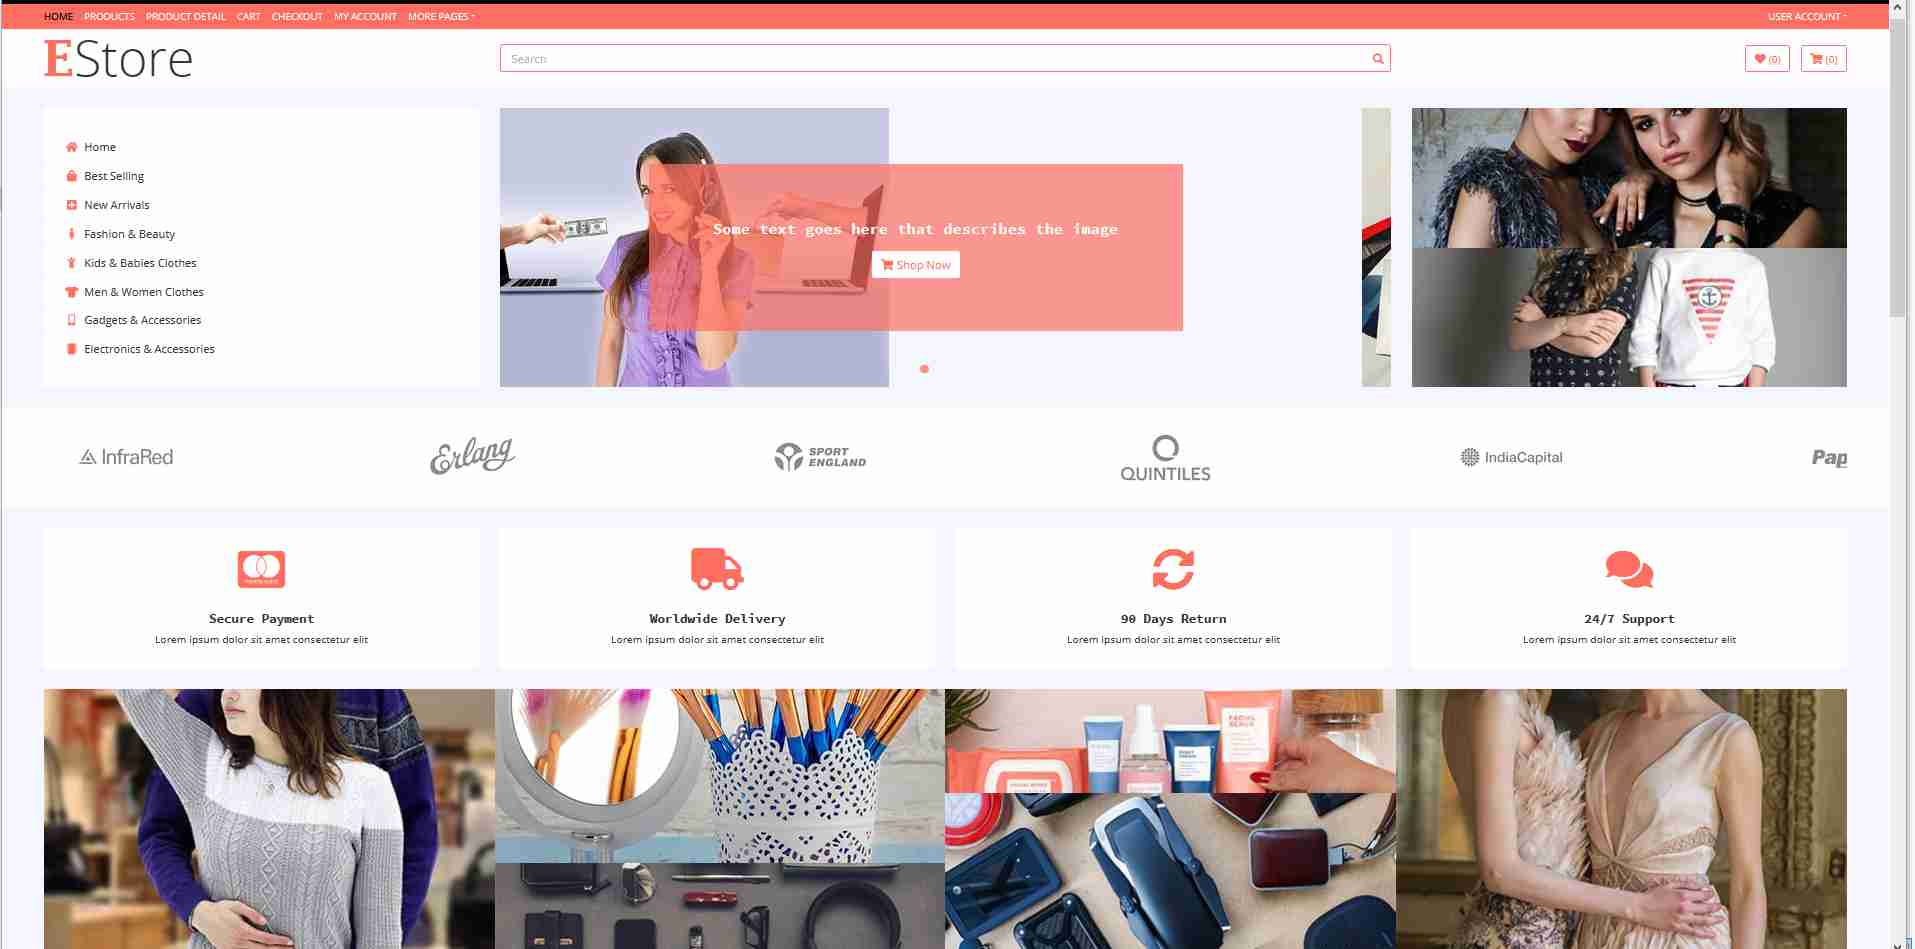 E strore Online Store E-commerce Responsive Website Using HTML/CSS